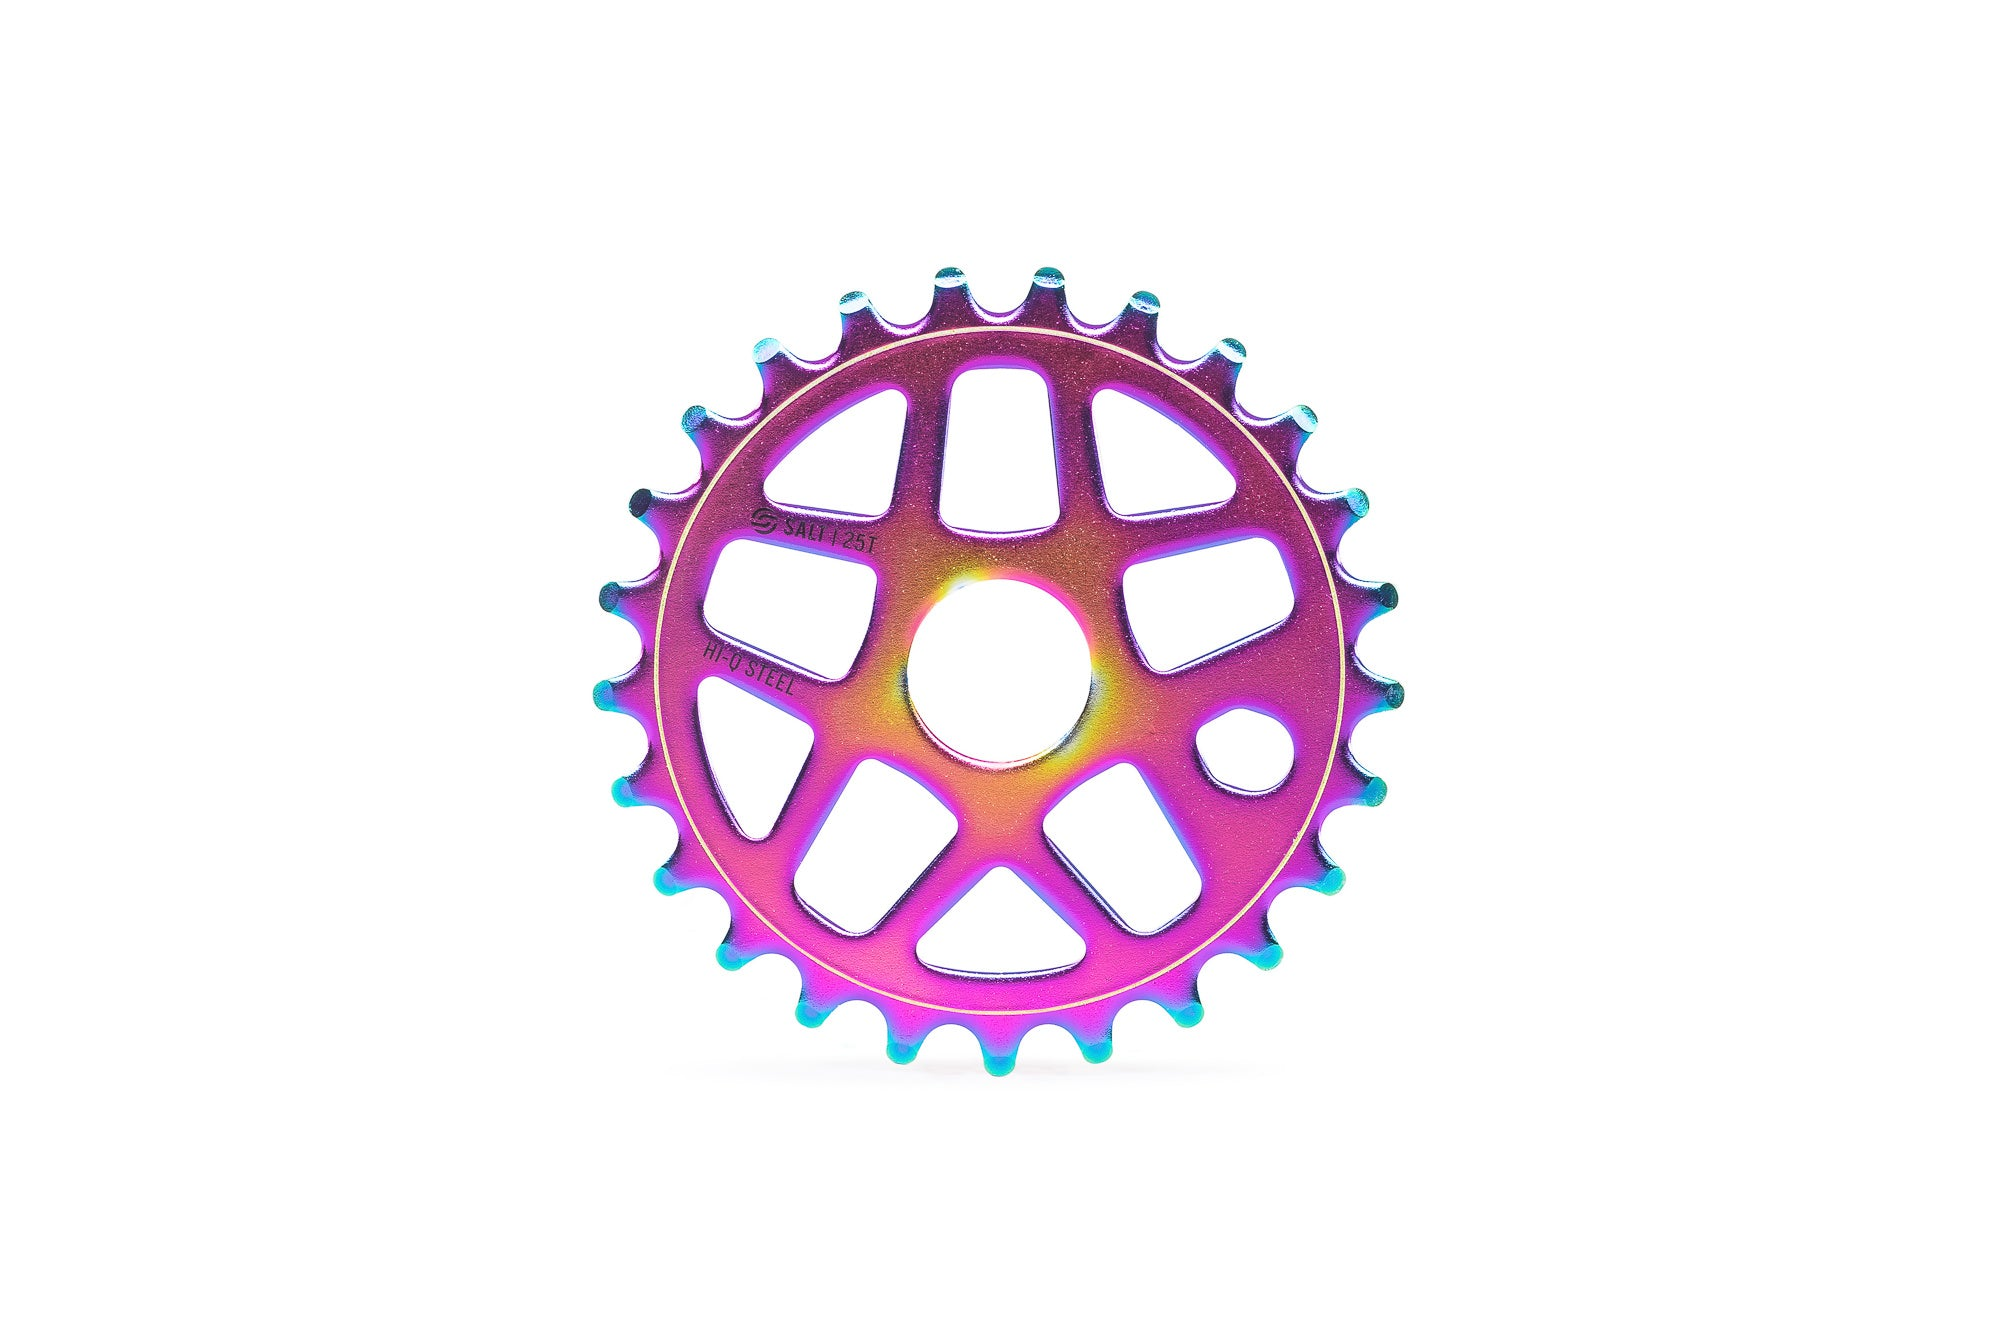 Salt 25t Gateway Steel BMX Sprocket/Chainwheel - Oil Slick